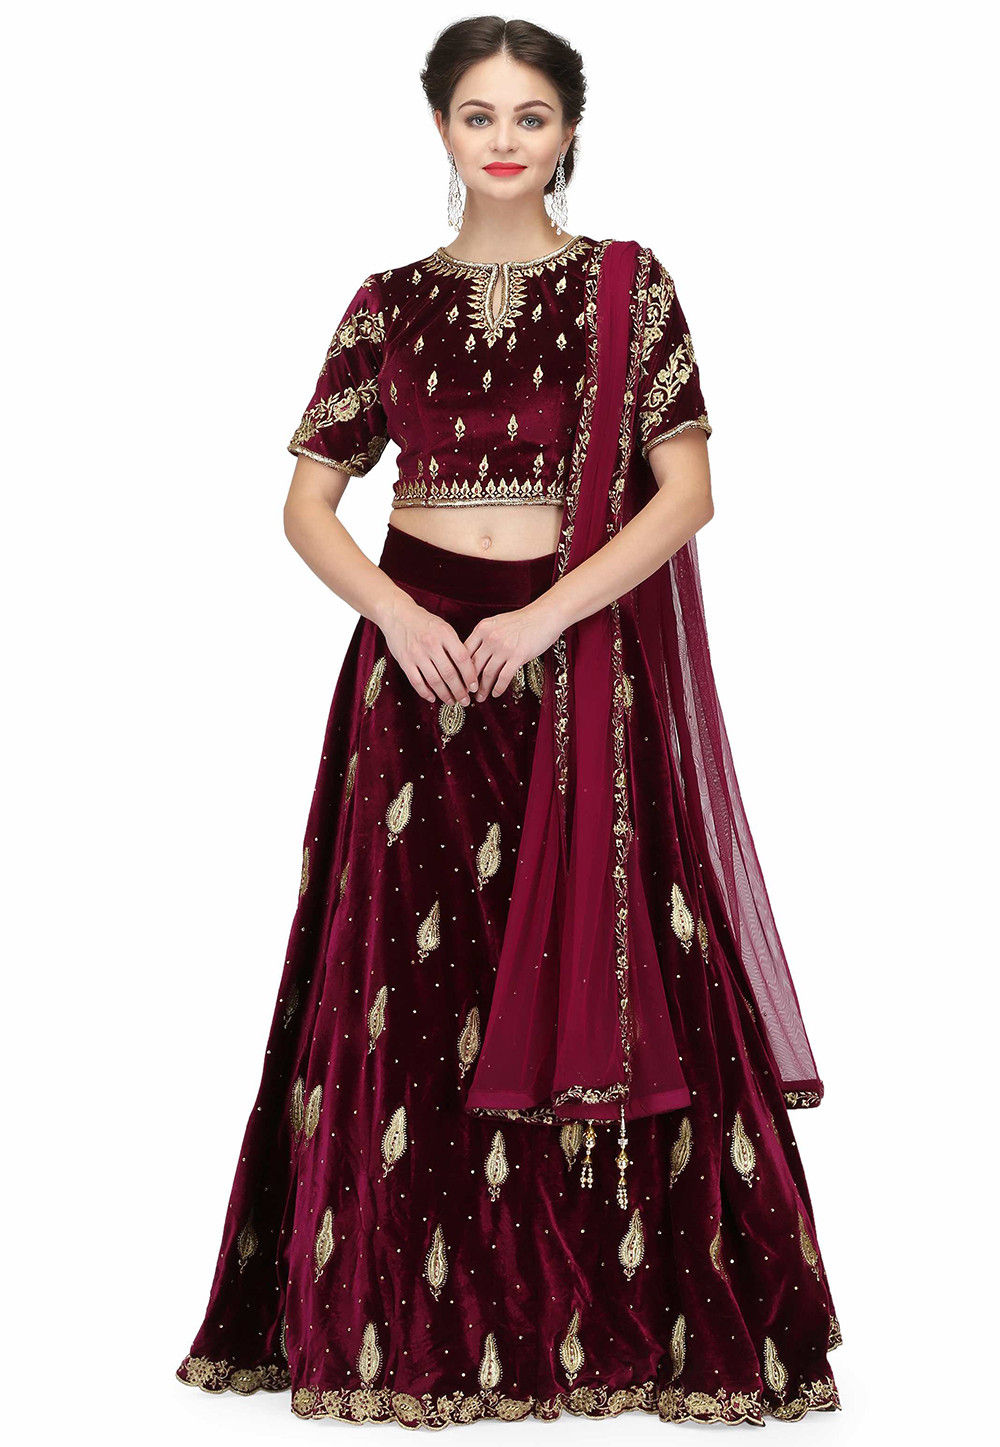 Hand Embroidered Velvet Lehenga in Dark Wine